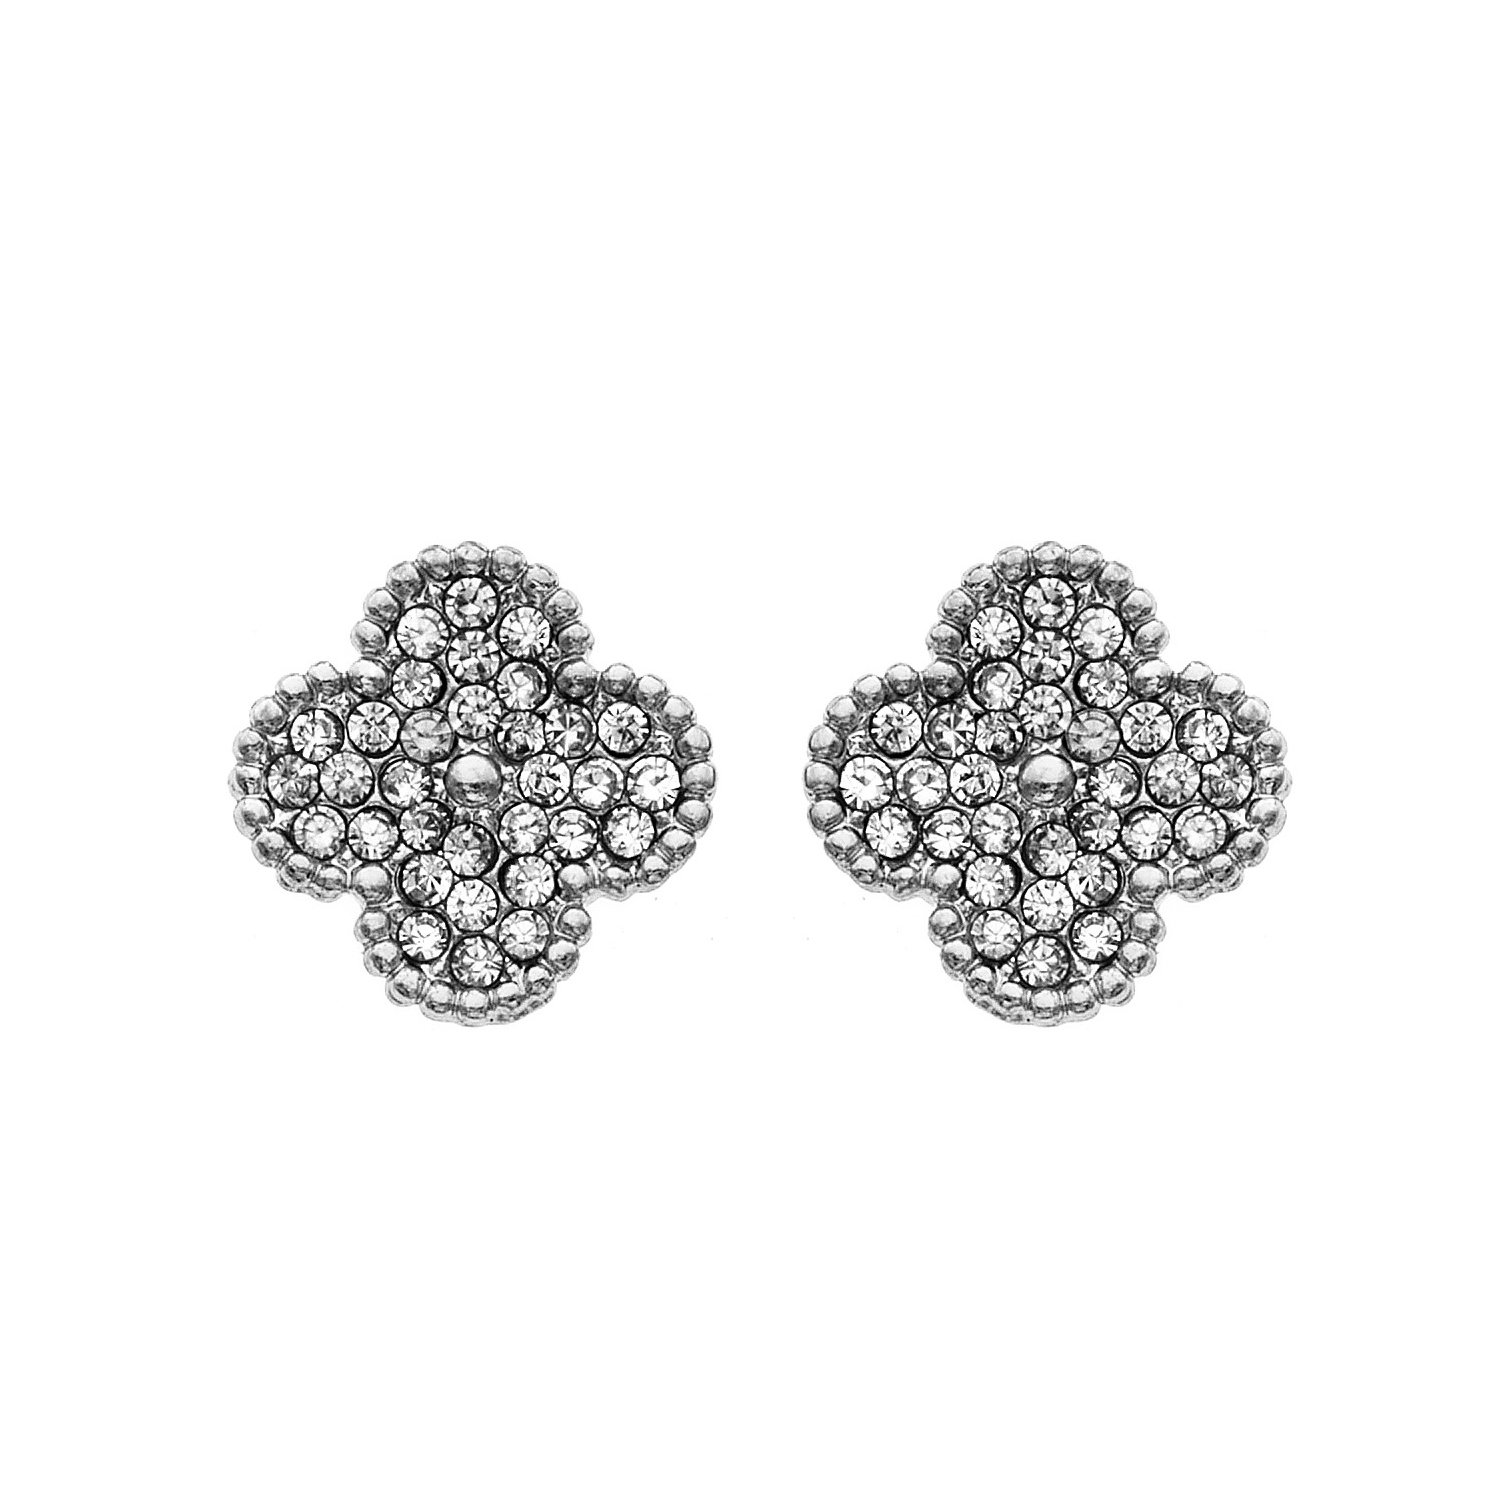 1fab87ad909da 14K Gold, Rose Gold, or Rhodium Plated Clover Stud Earrings with White  Crystals